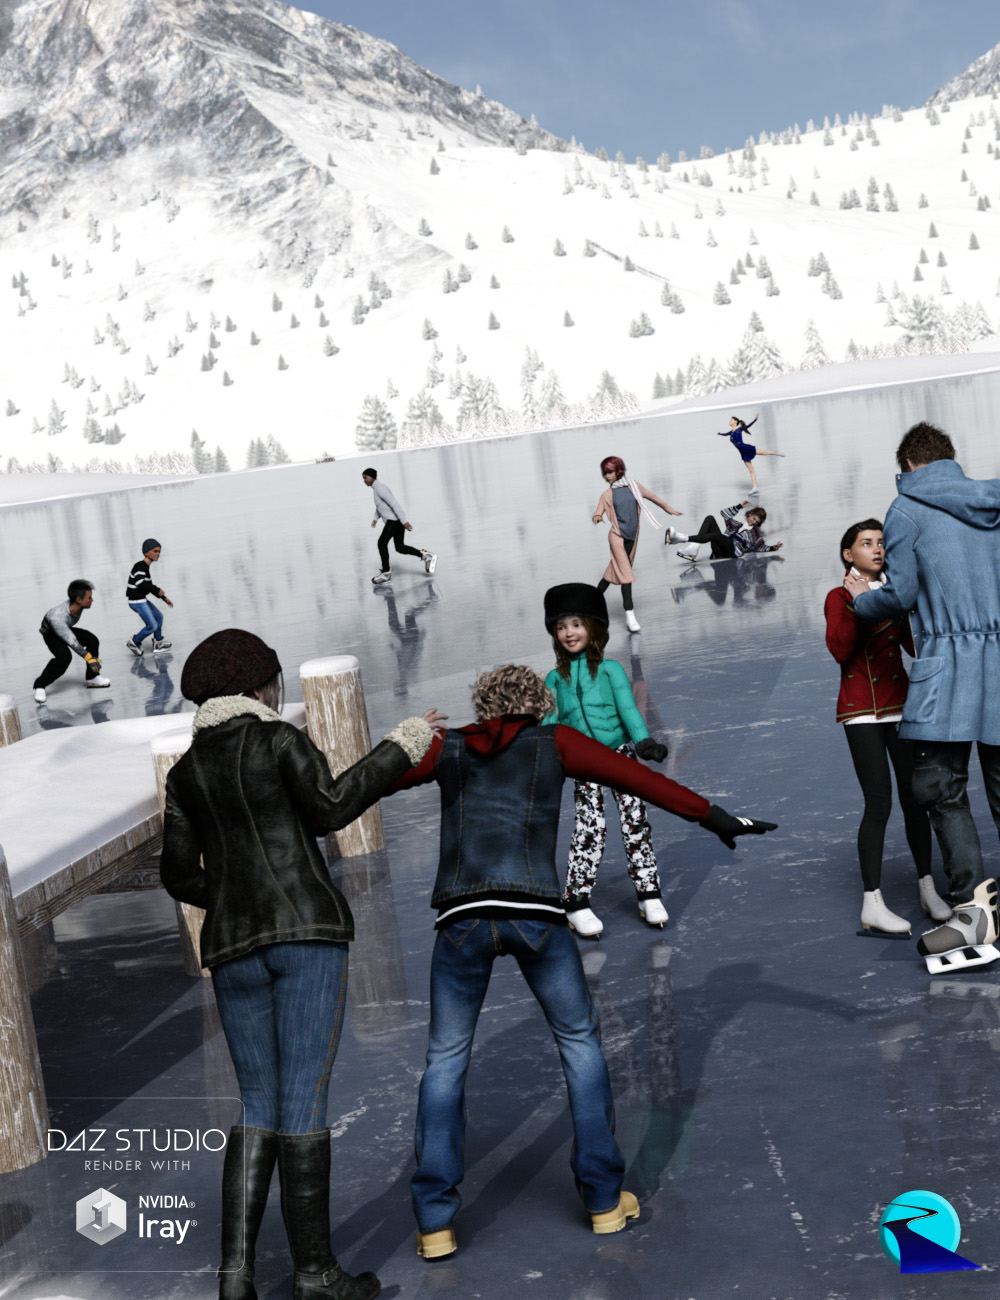 Now-Crowd Billboards - On the Ice (Winter Fun Vol I) by: RiverSoft Art, 3D Models by Daz 3D